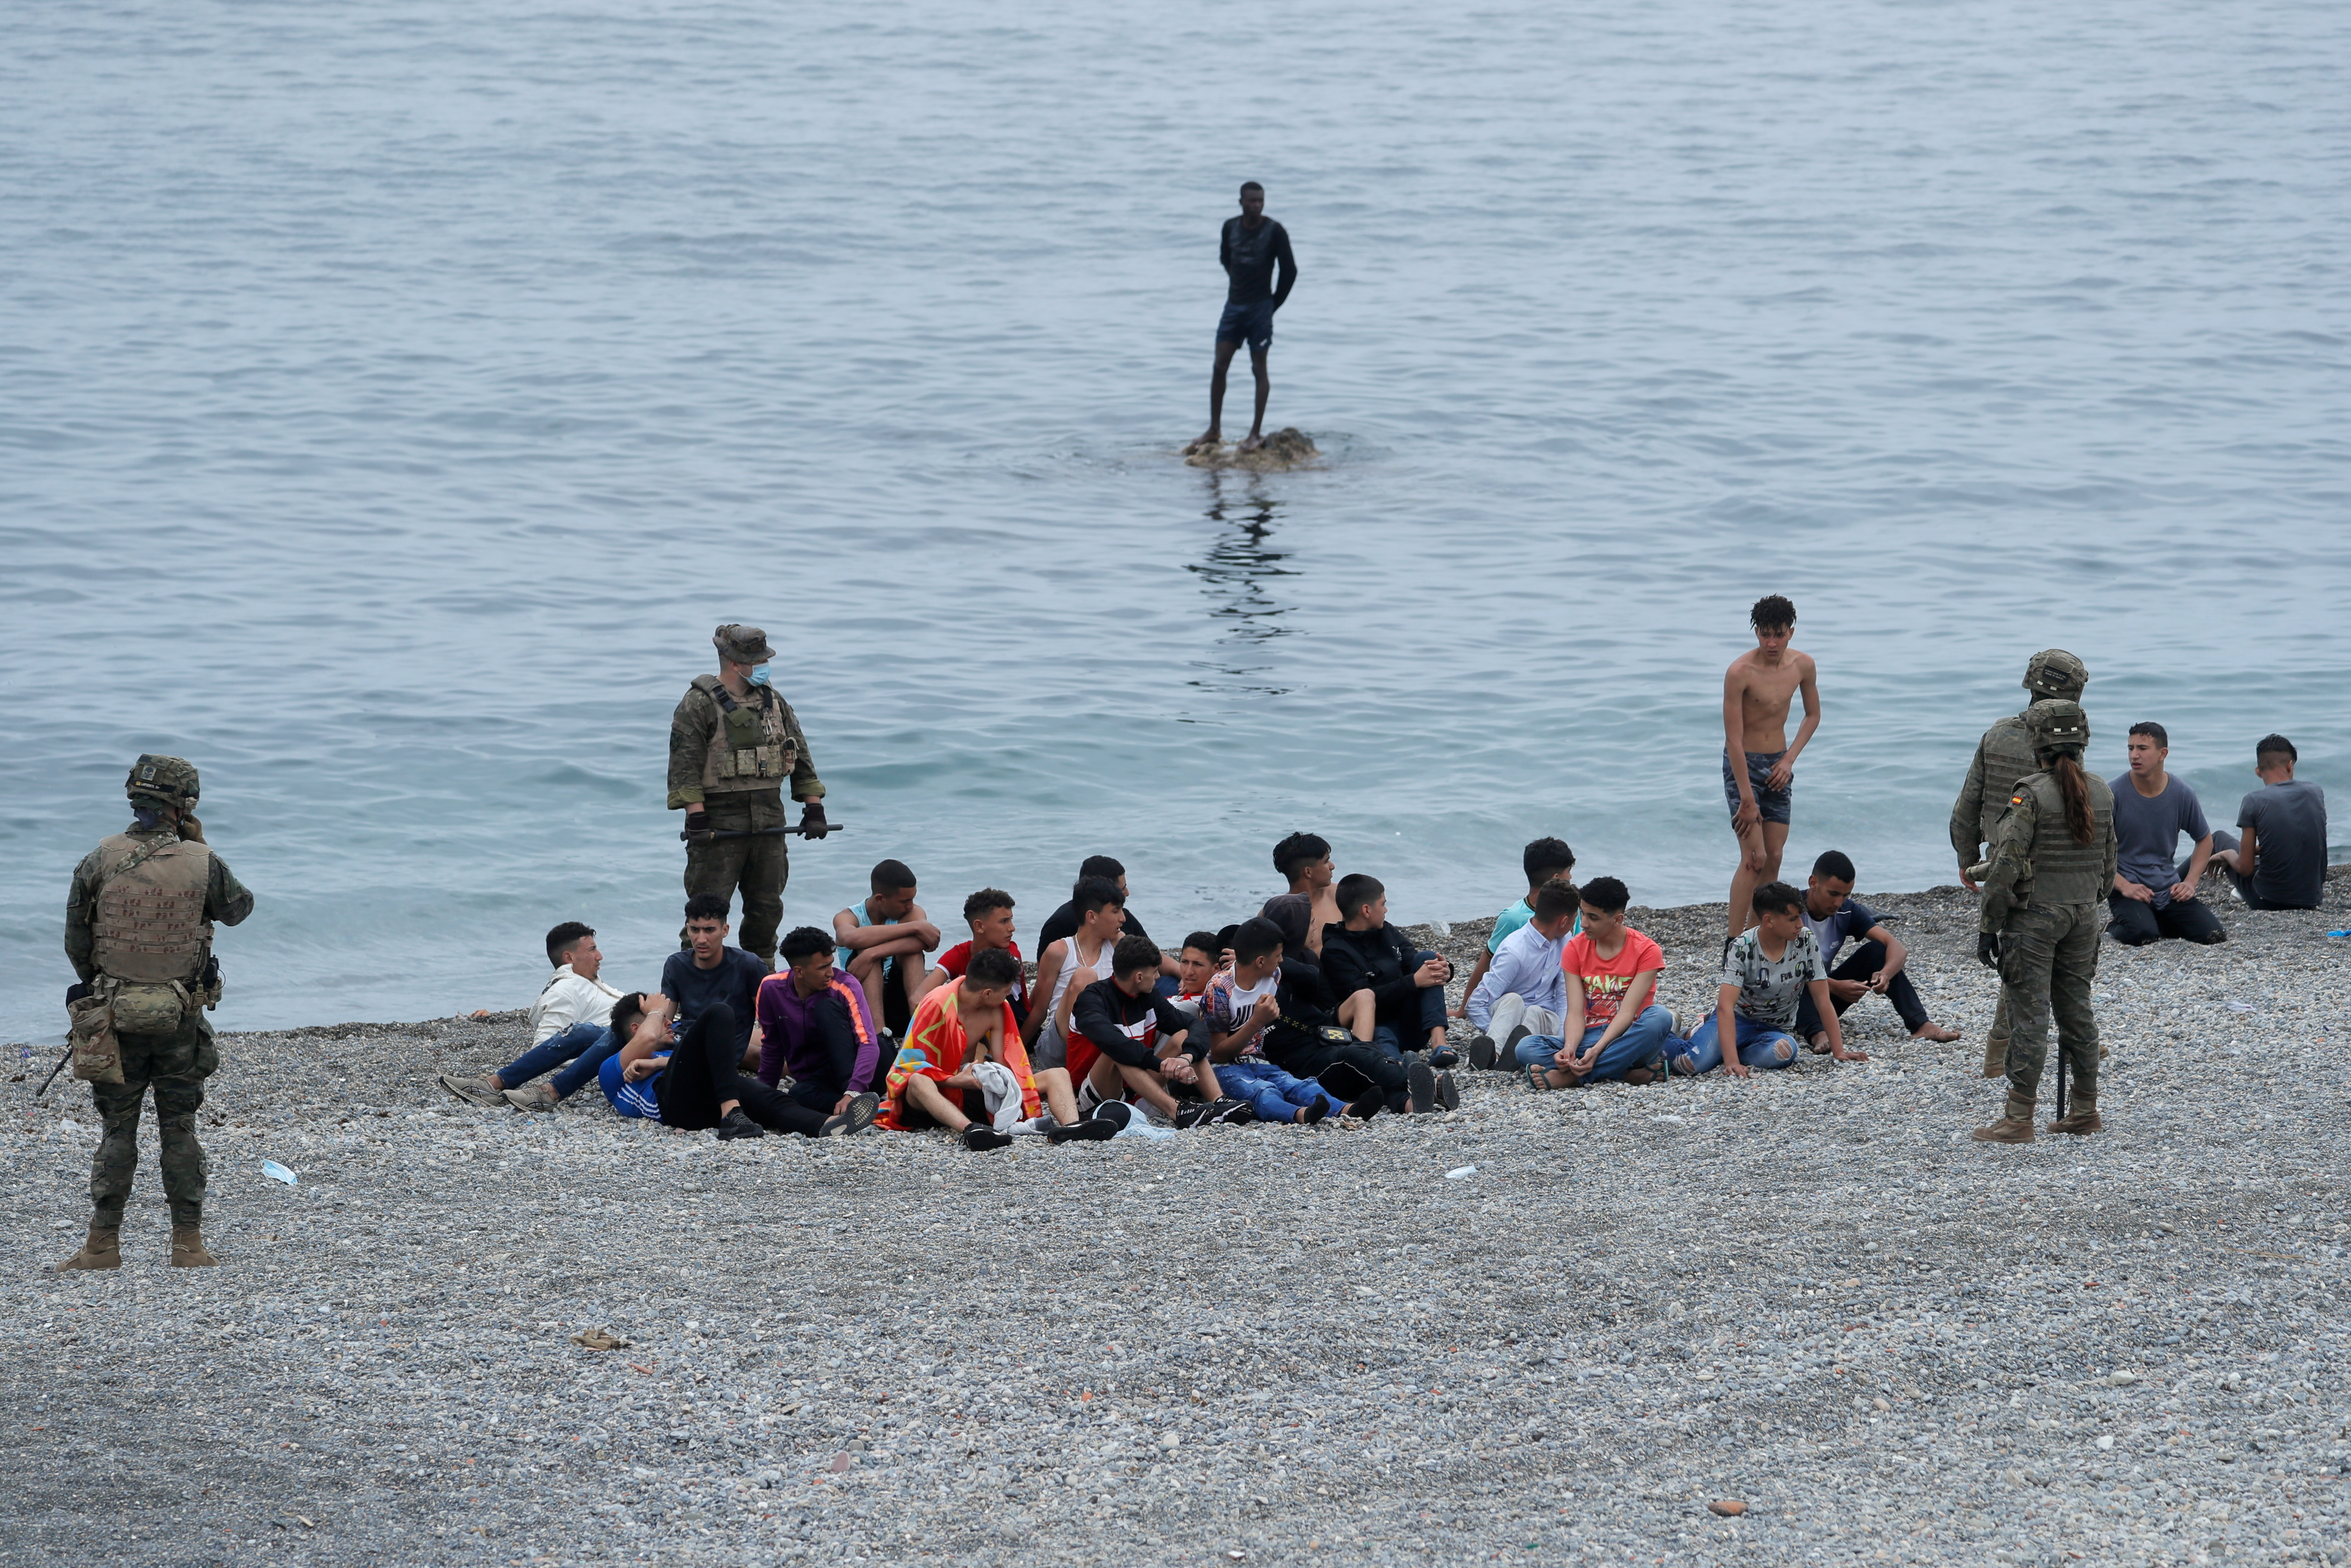 Spanish legionnaires stand around Moroccan citizens, after thousands of Moroccans swam across Spanish-Moroccan border on Monday, in Ceuta, Spain, May 18, 2021. REUTERS/Jon Nazca